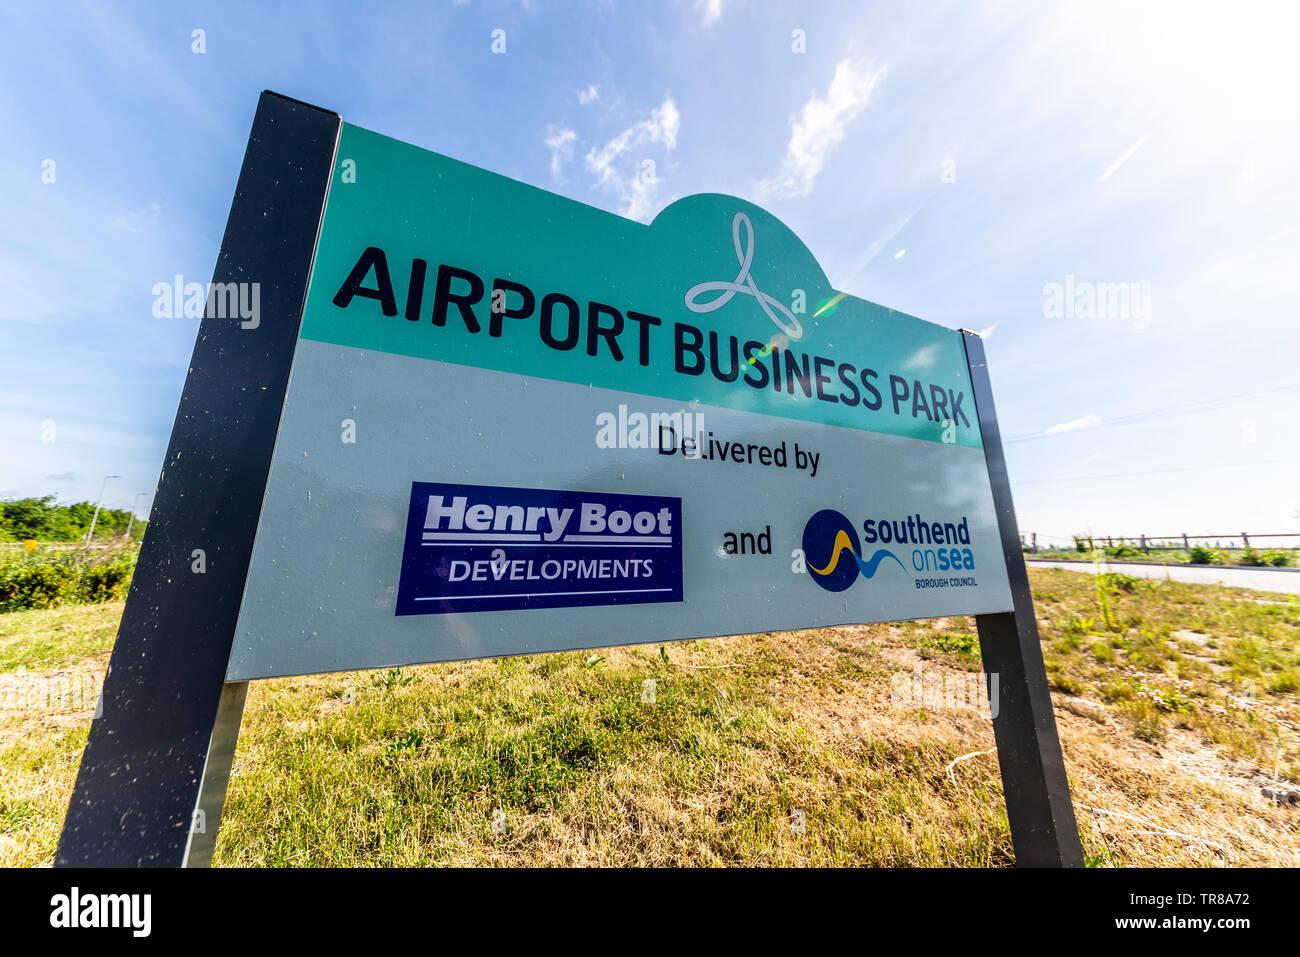 London Southend Airport, Airport Business Park development at Southend on Sea, Essex, UK. Sign on roundabout advertising. Henry Boot Developments - Stock Image